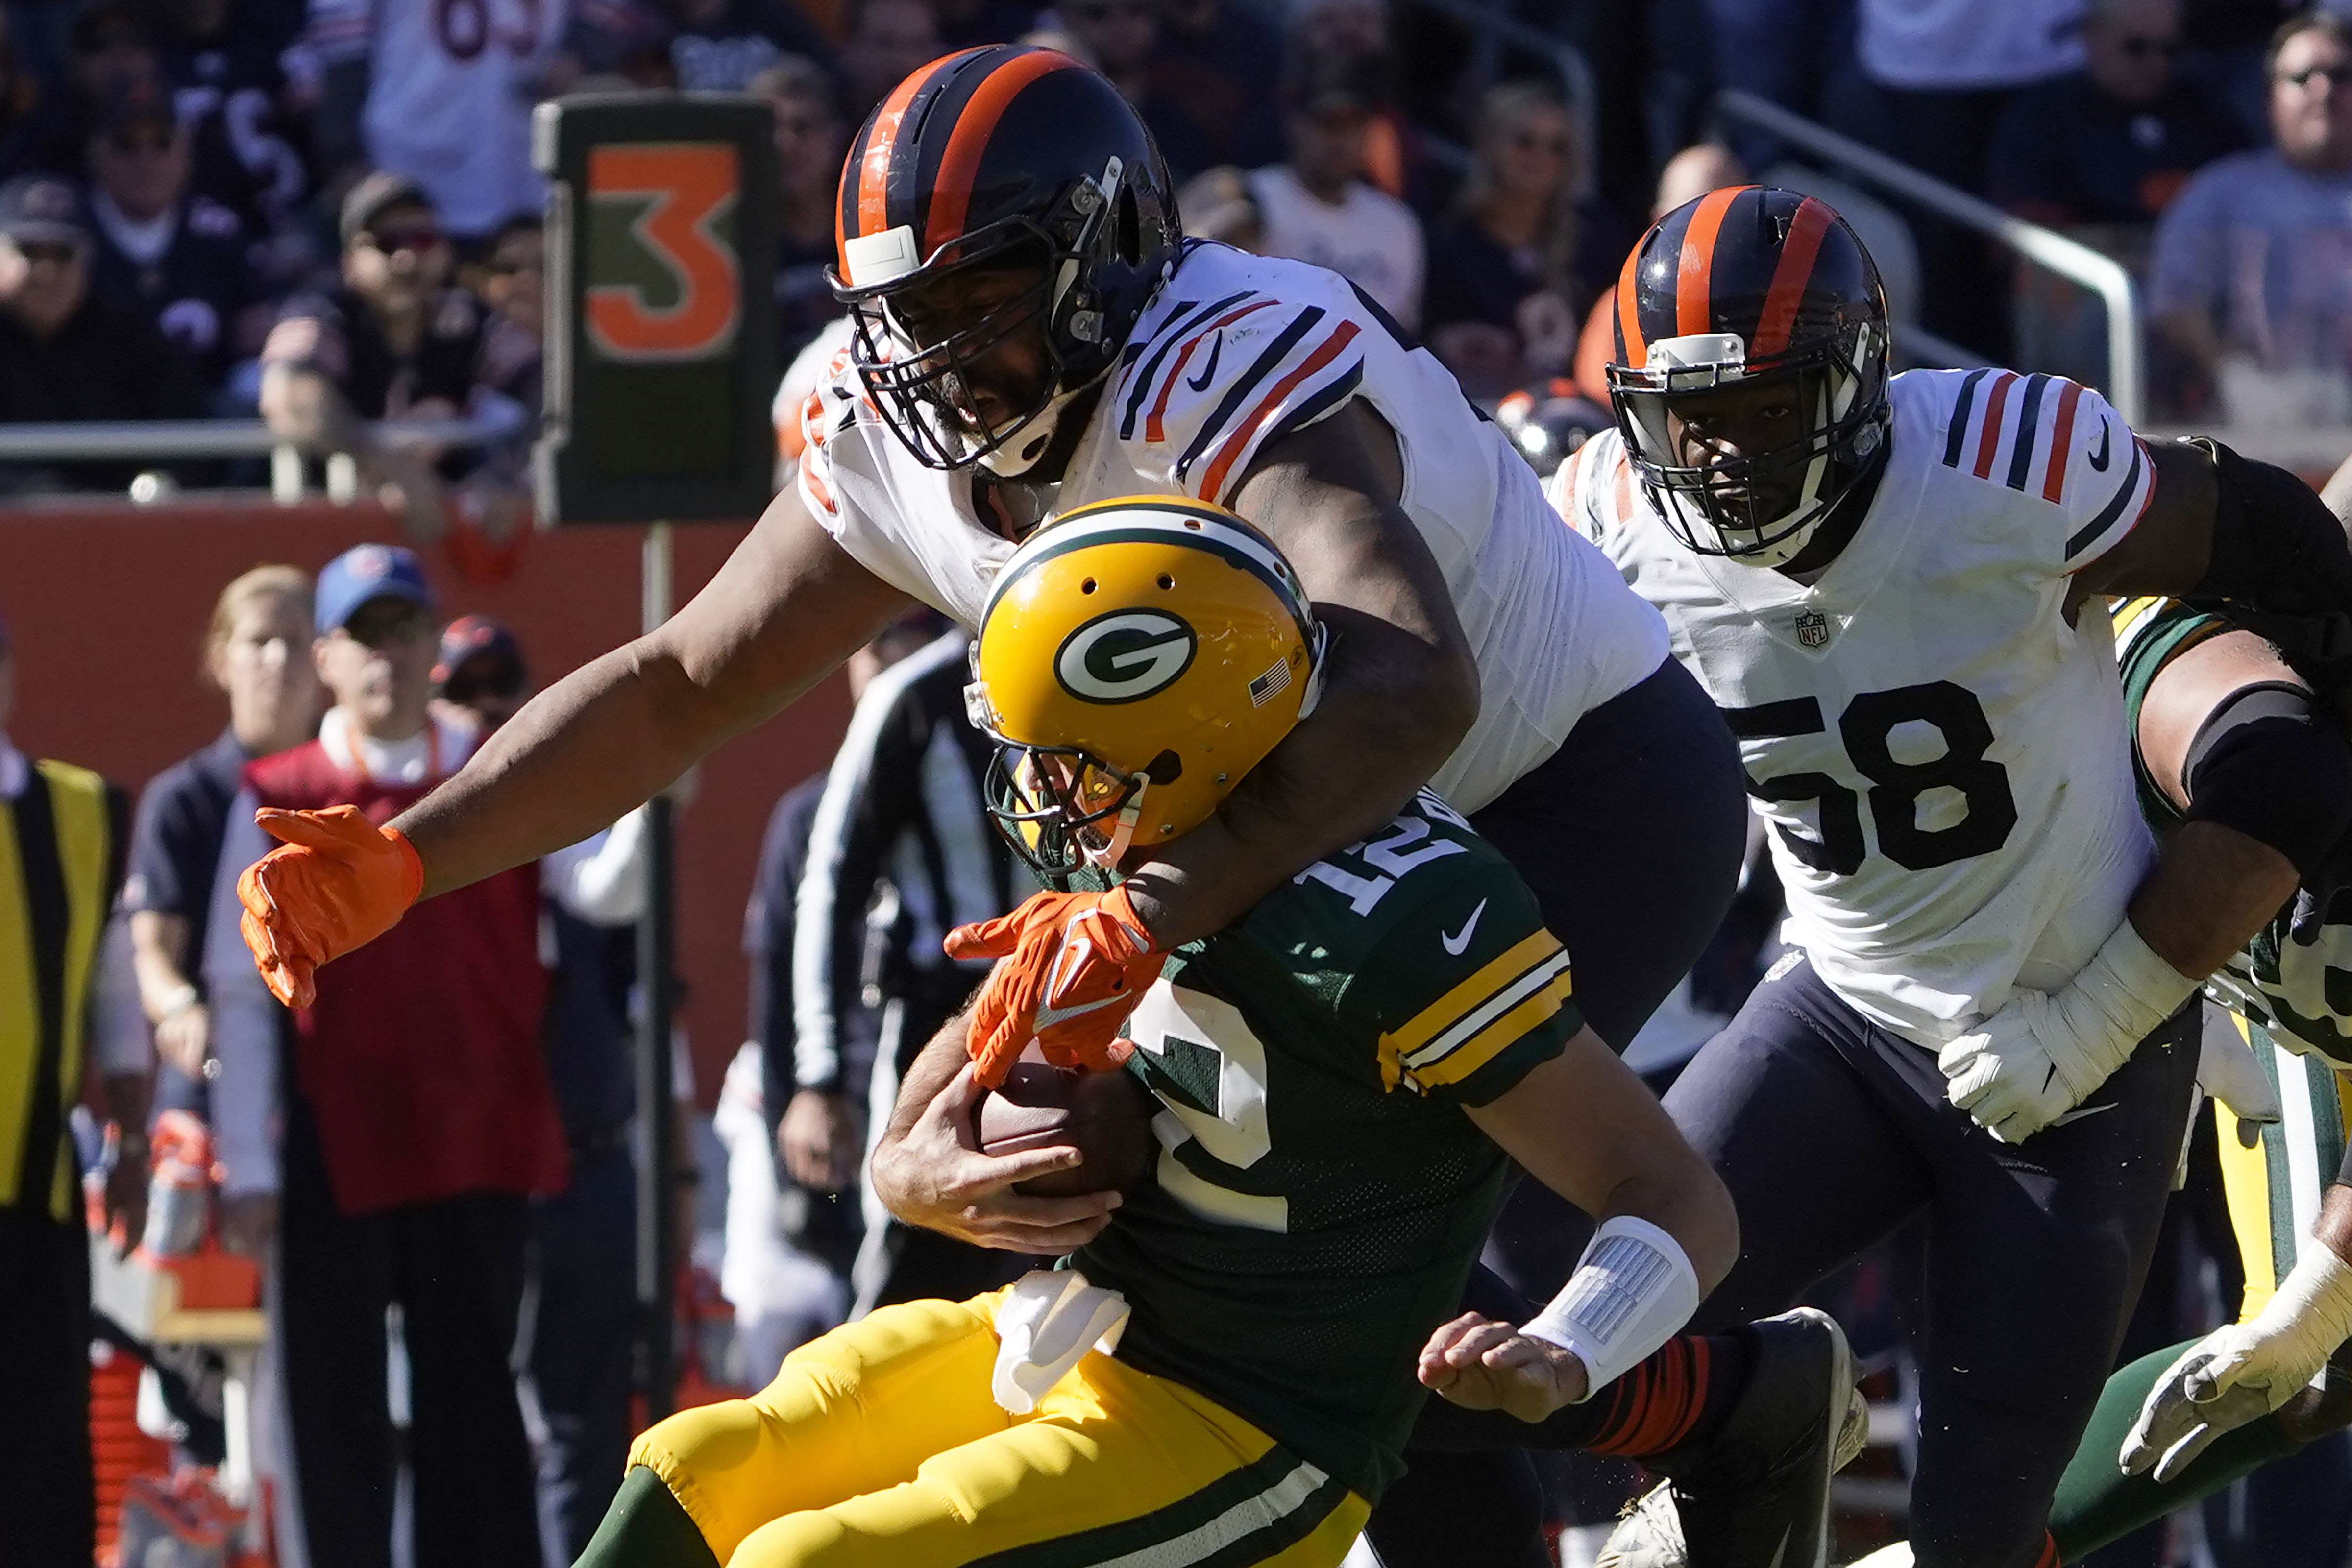 Bears defensive end Akiem Hicks (96) sacks Aaron Rodgers for a 10-yard loss in the third quarter Sunday at Soldier Field.